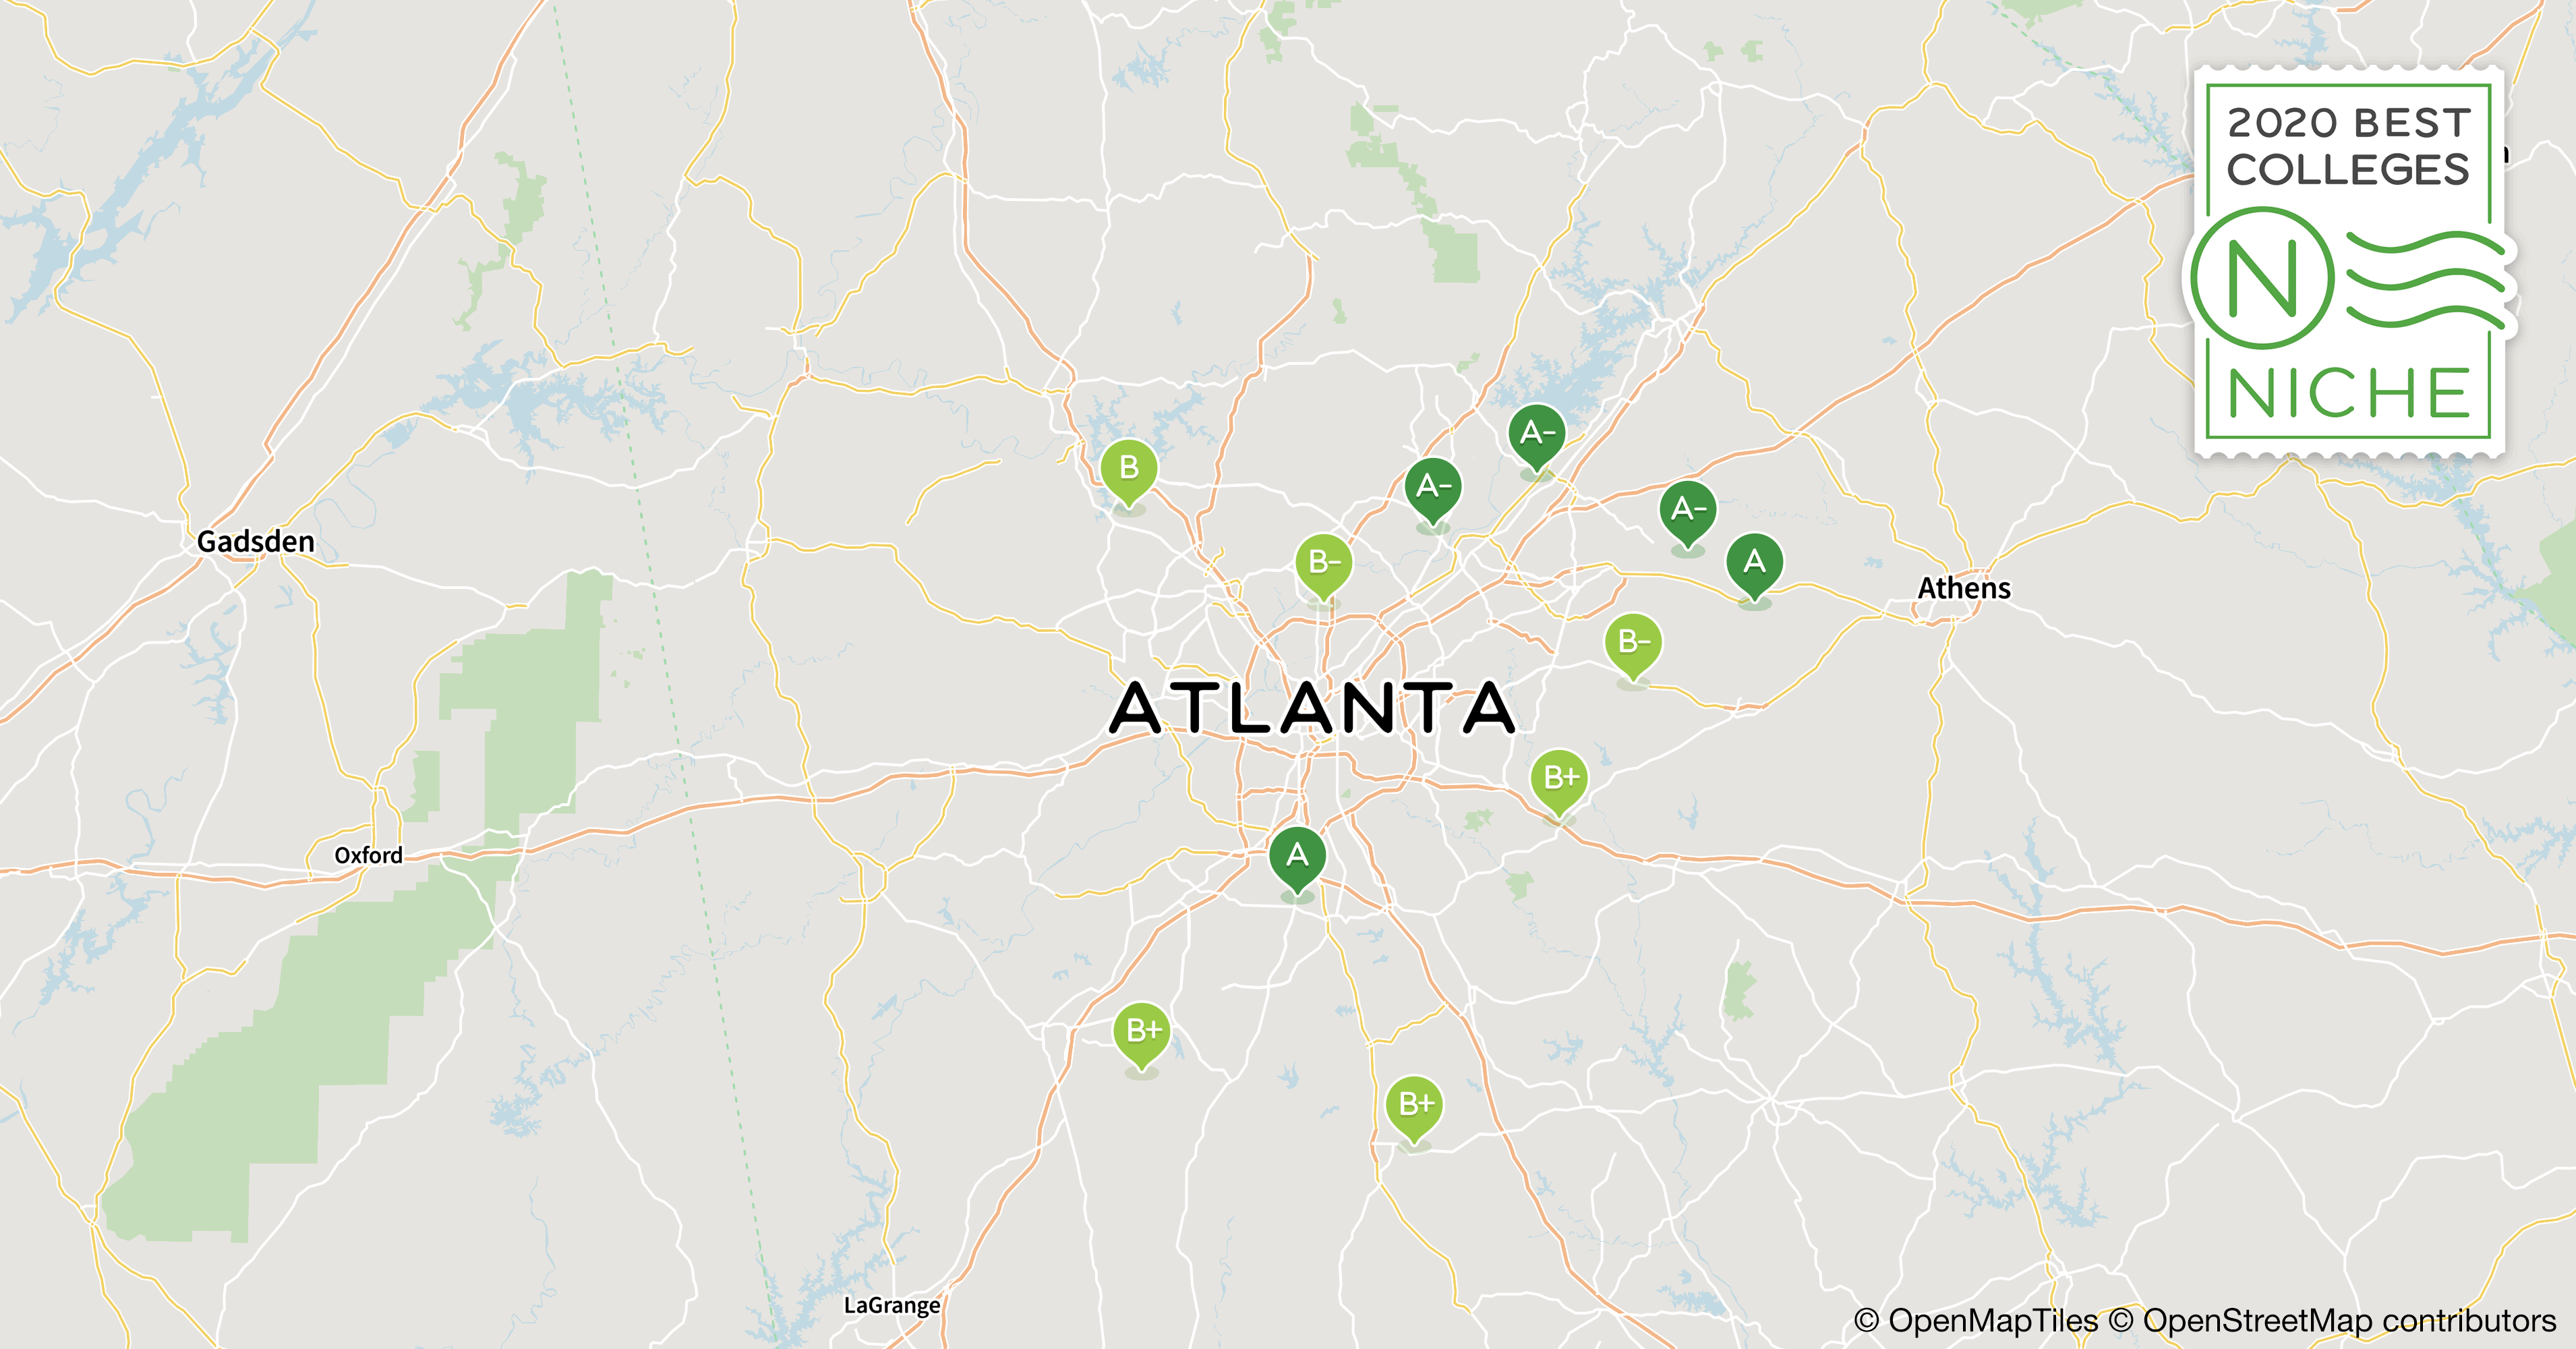 Map Of Colleges In Georgia.2020 Best Colleges In Atlanta Area Niche